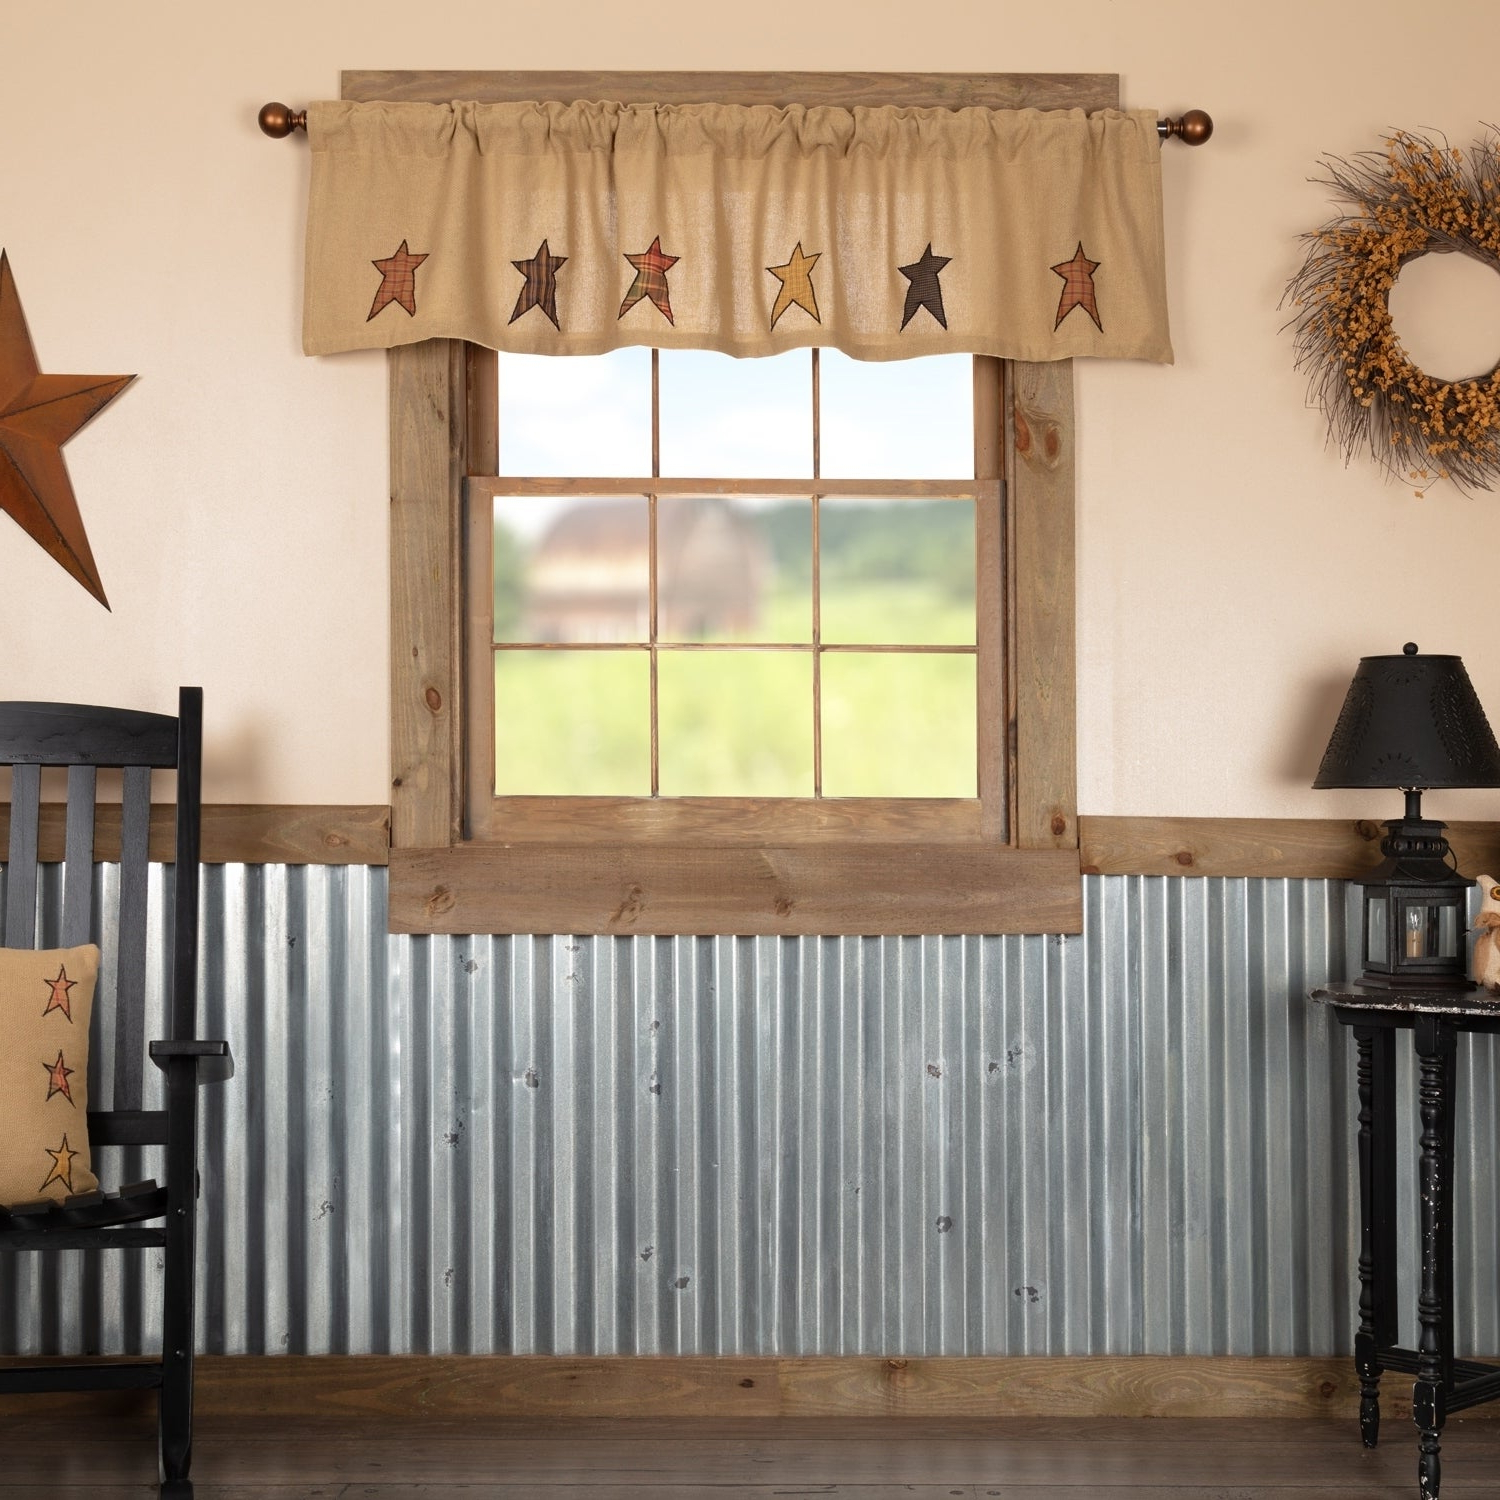 Well Liked Primitive Kitchen Curtains Intended For Details About Tan Primitive Kitchen Curtains Vhc Stratton Stars Valance  Country Black, Natural (View 20 of 20)